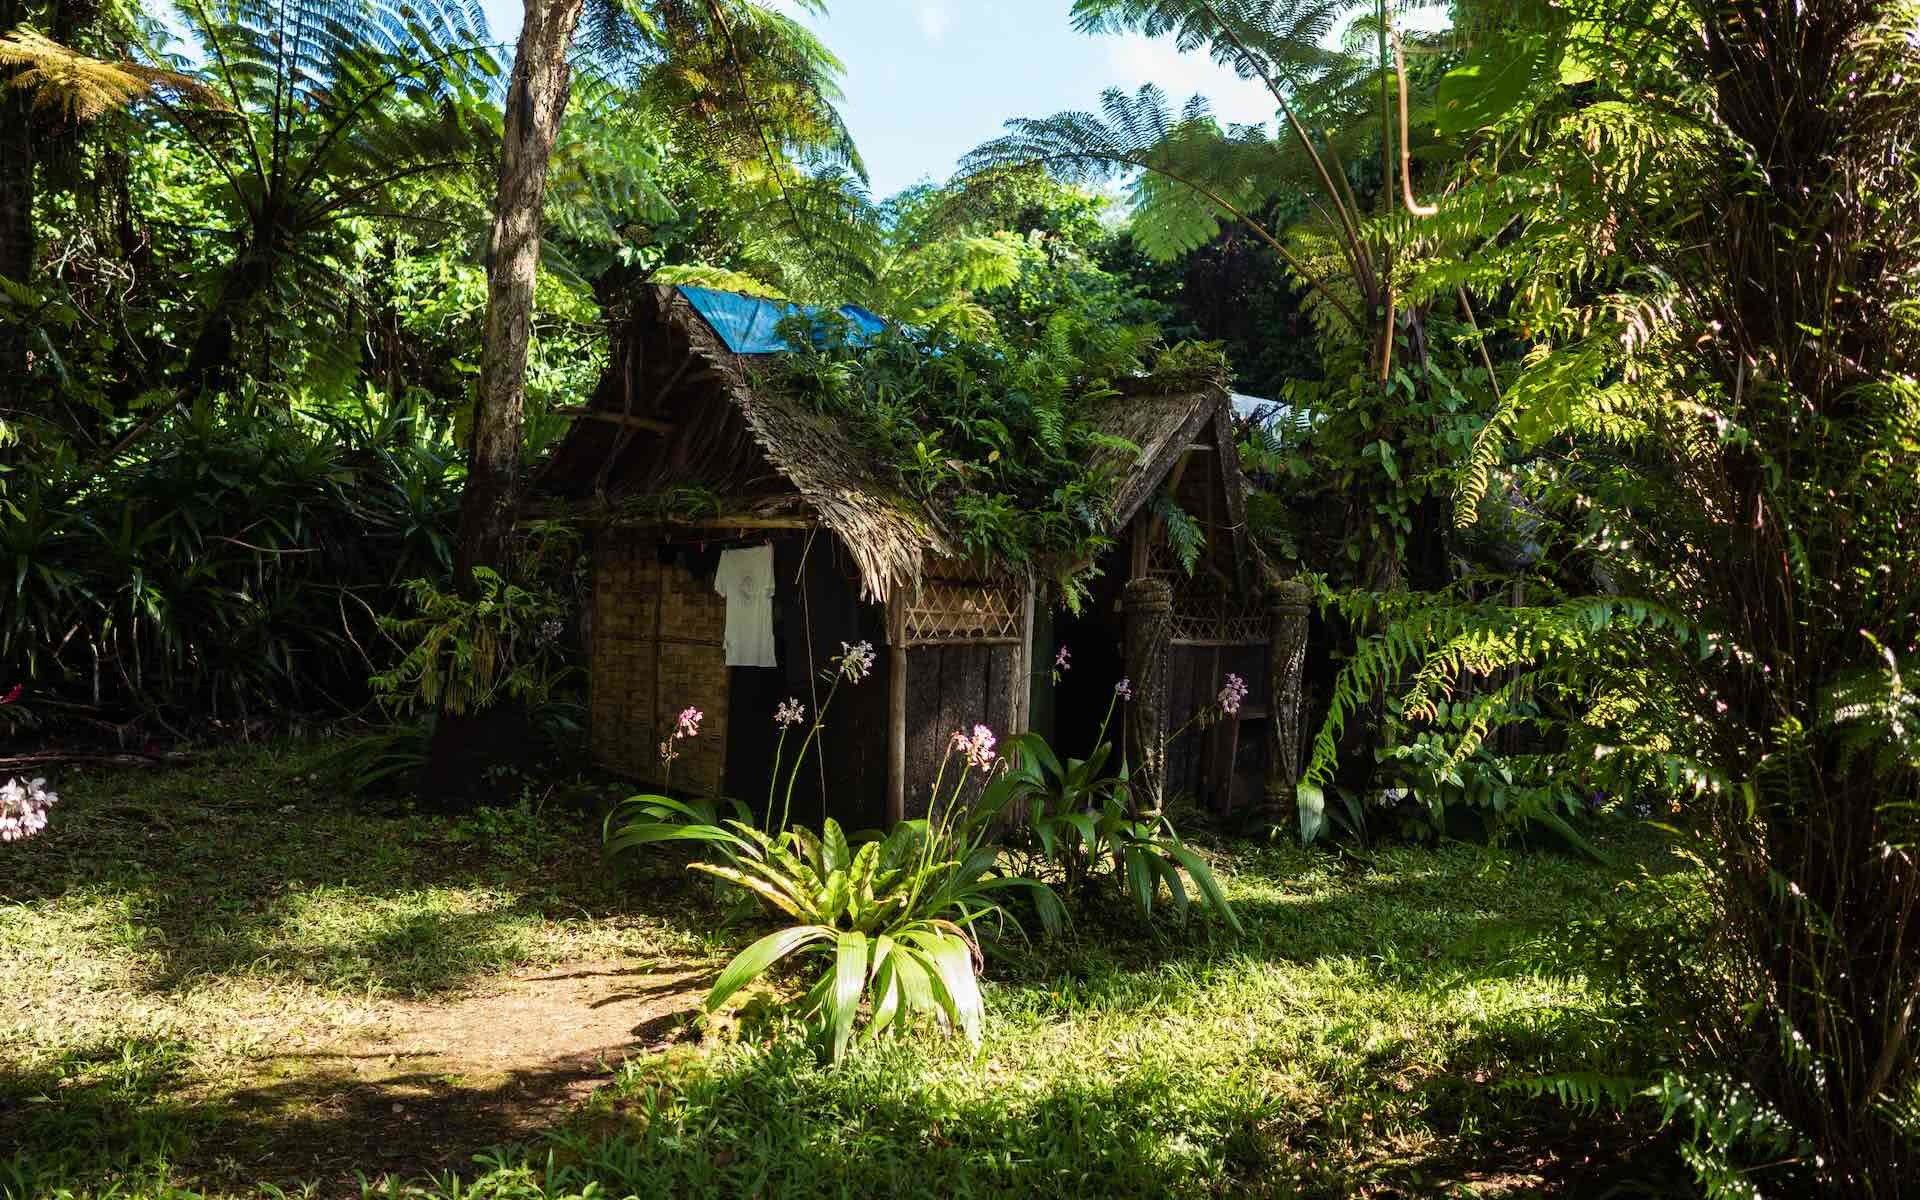 The Best Places to Stay in the Outer Islands of Vanuatu, photos by Ben Savage and Ain Raadik, Ruby Claire, Gaua, Victors campsite, hut, palm trees, home, accommodation